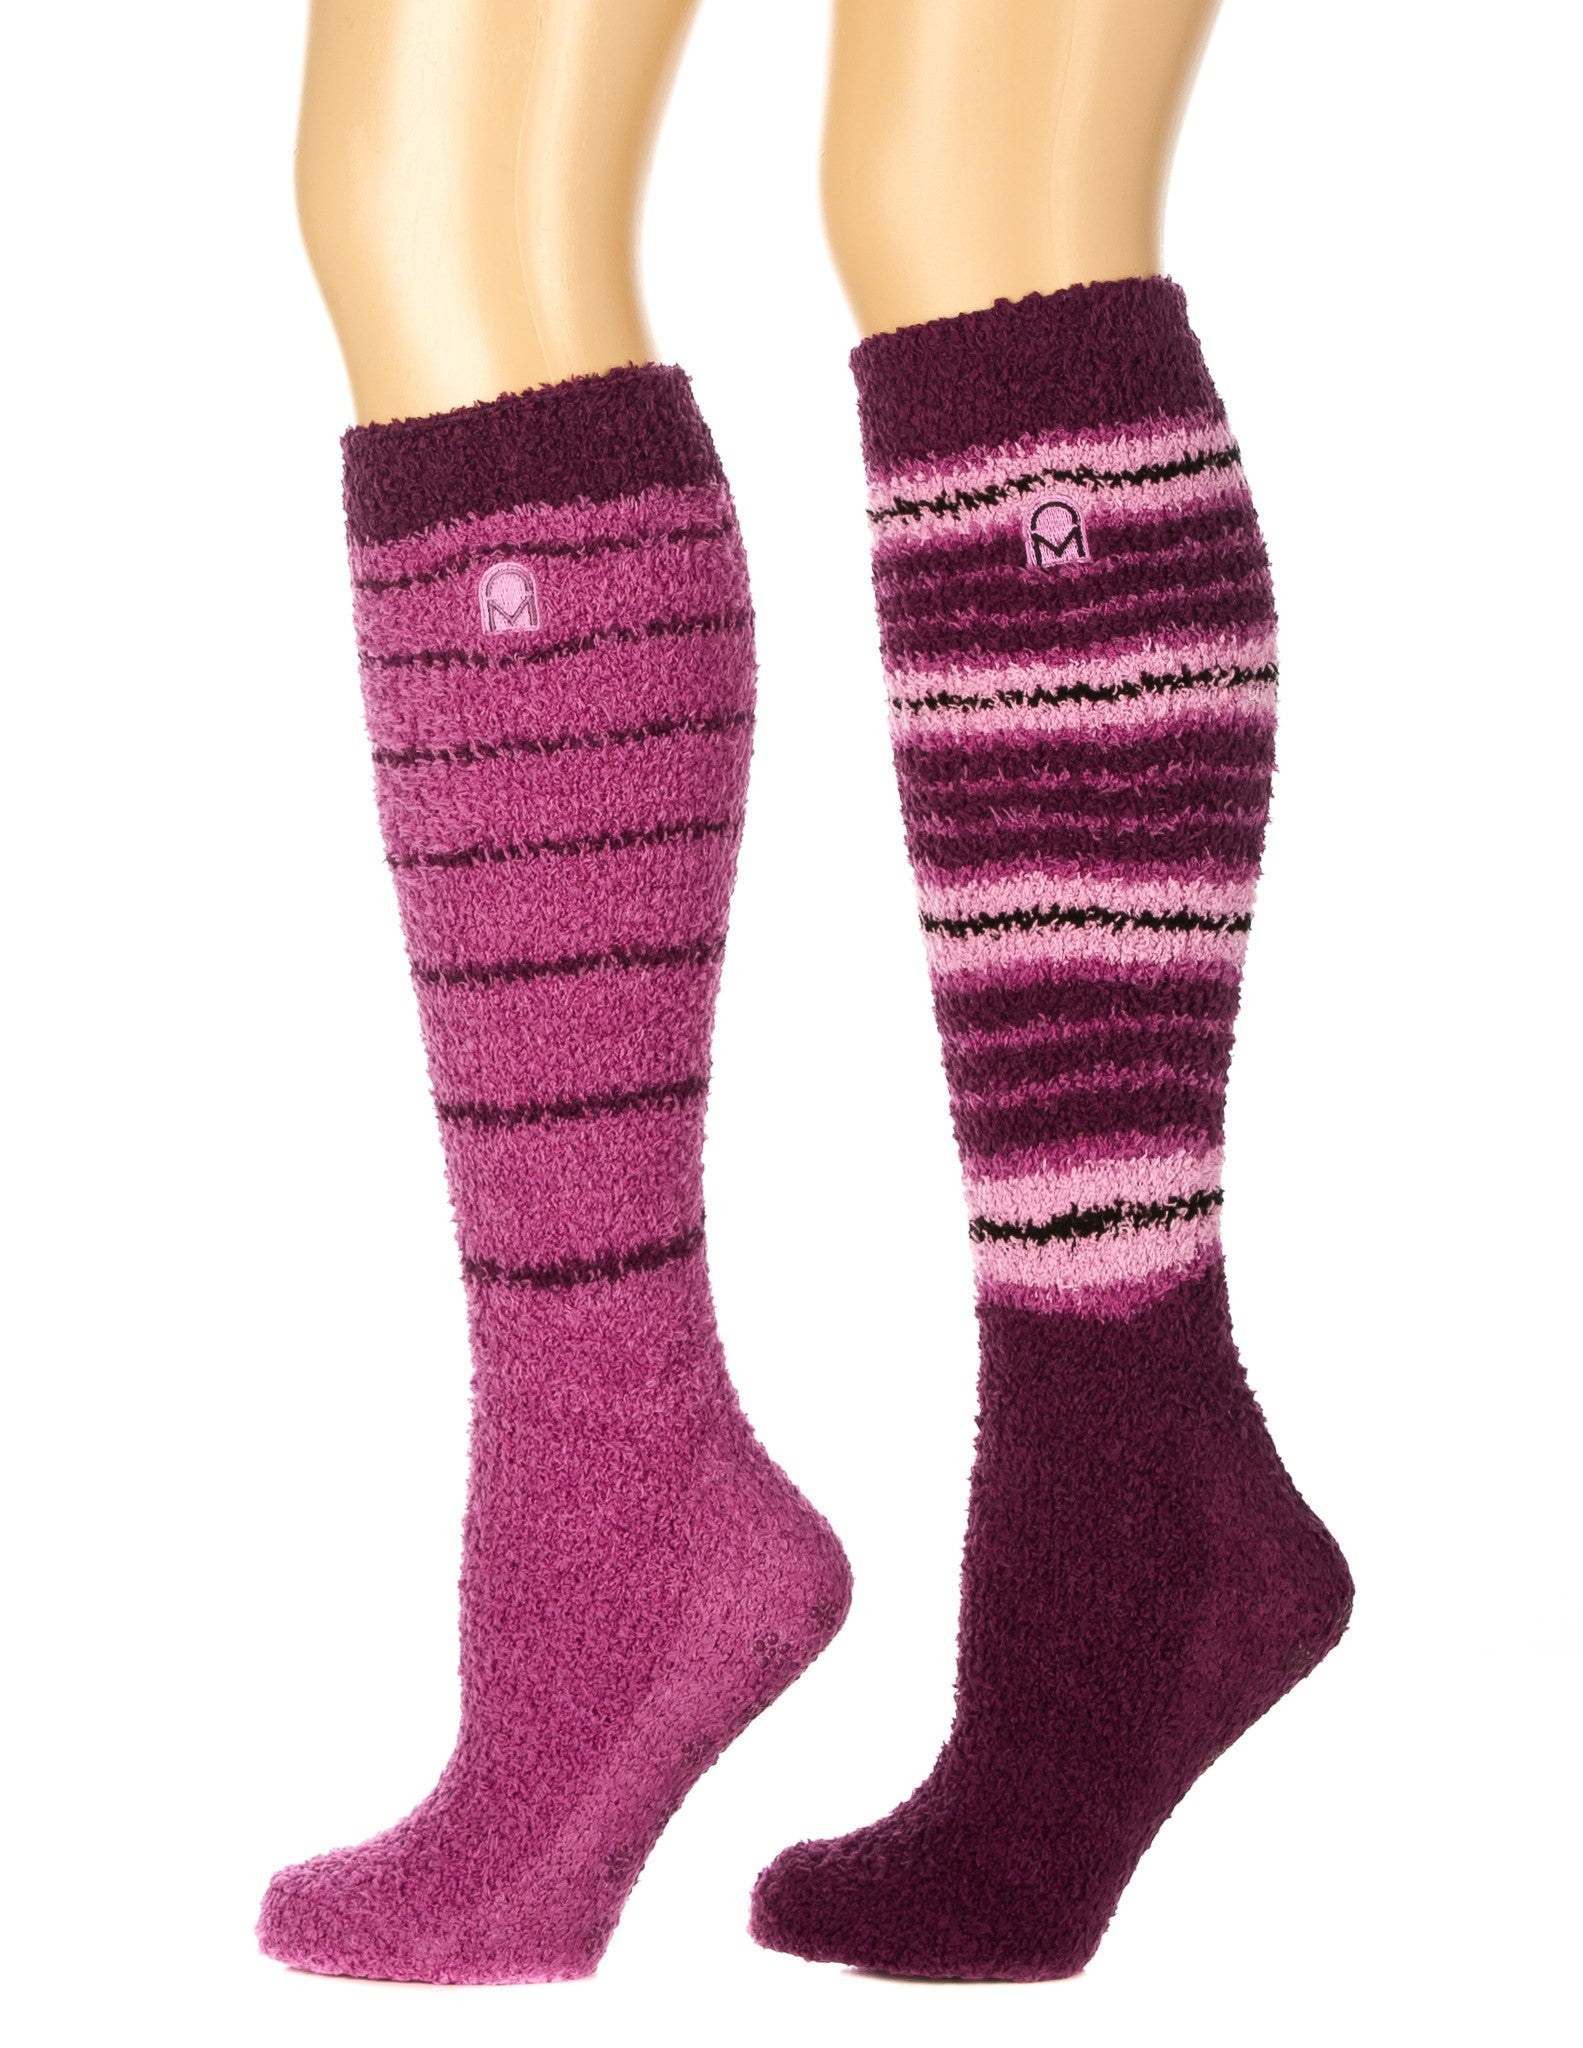 Women's (2 Pairs) Soft Anti-Skid Fuzzy Winter Knee High Socks